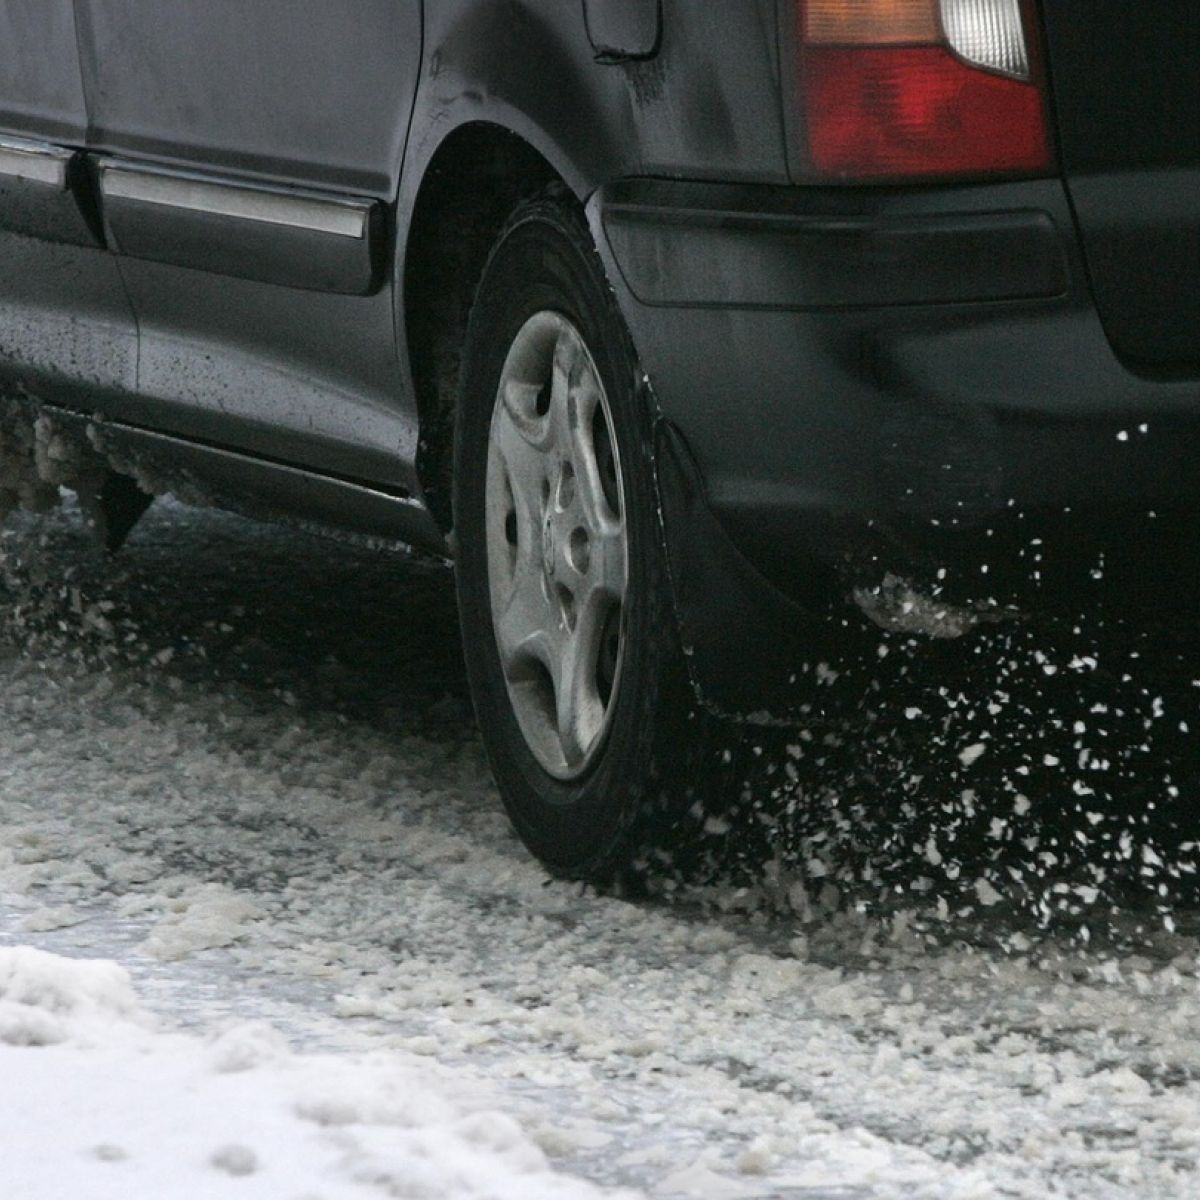 Tips for driving on snow or ice: Take care that you're not slip